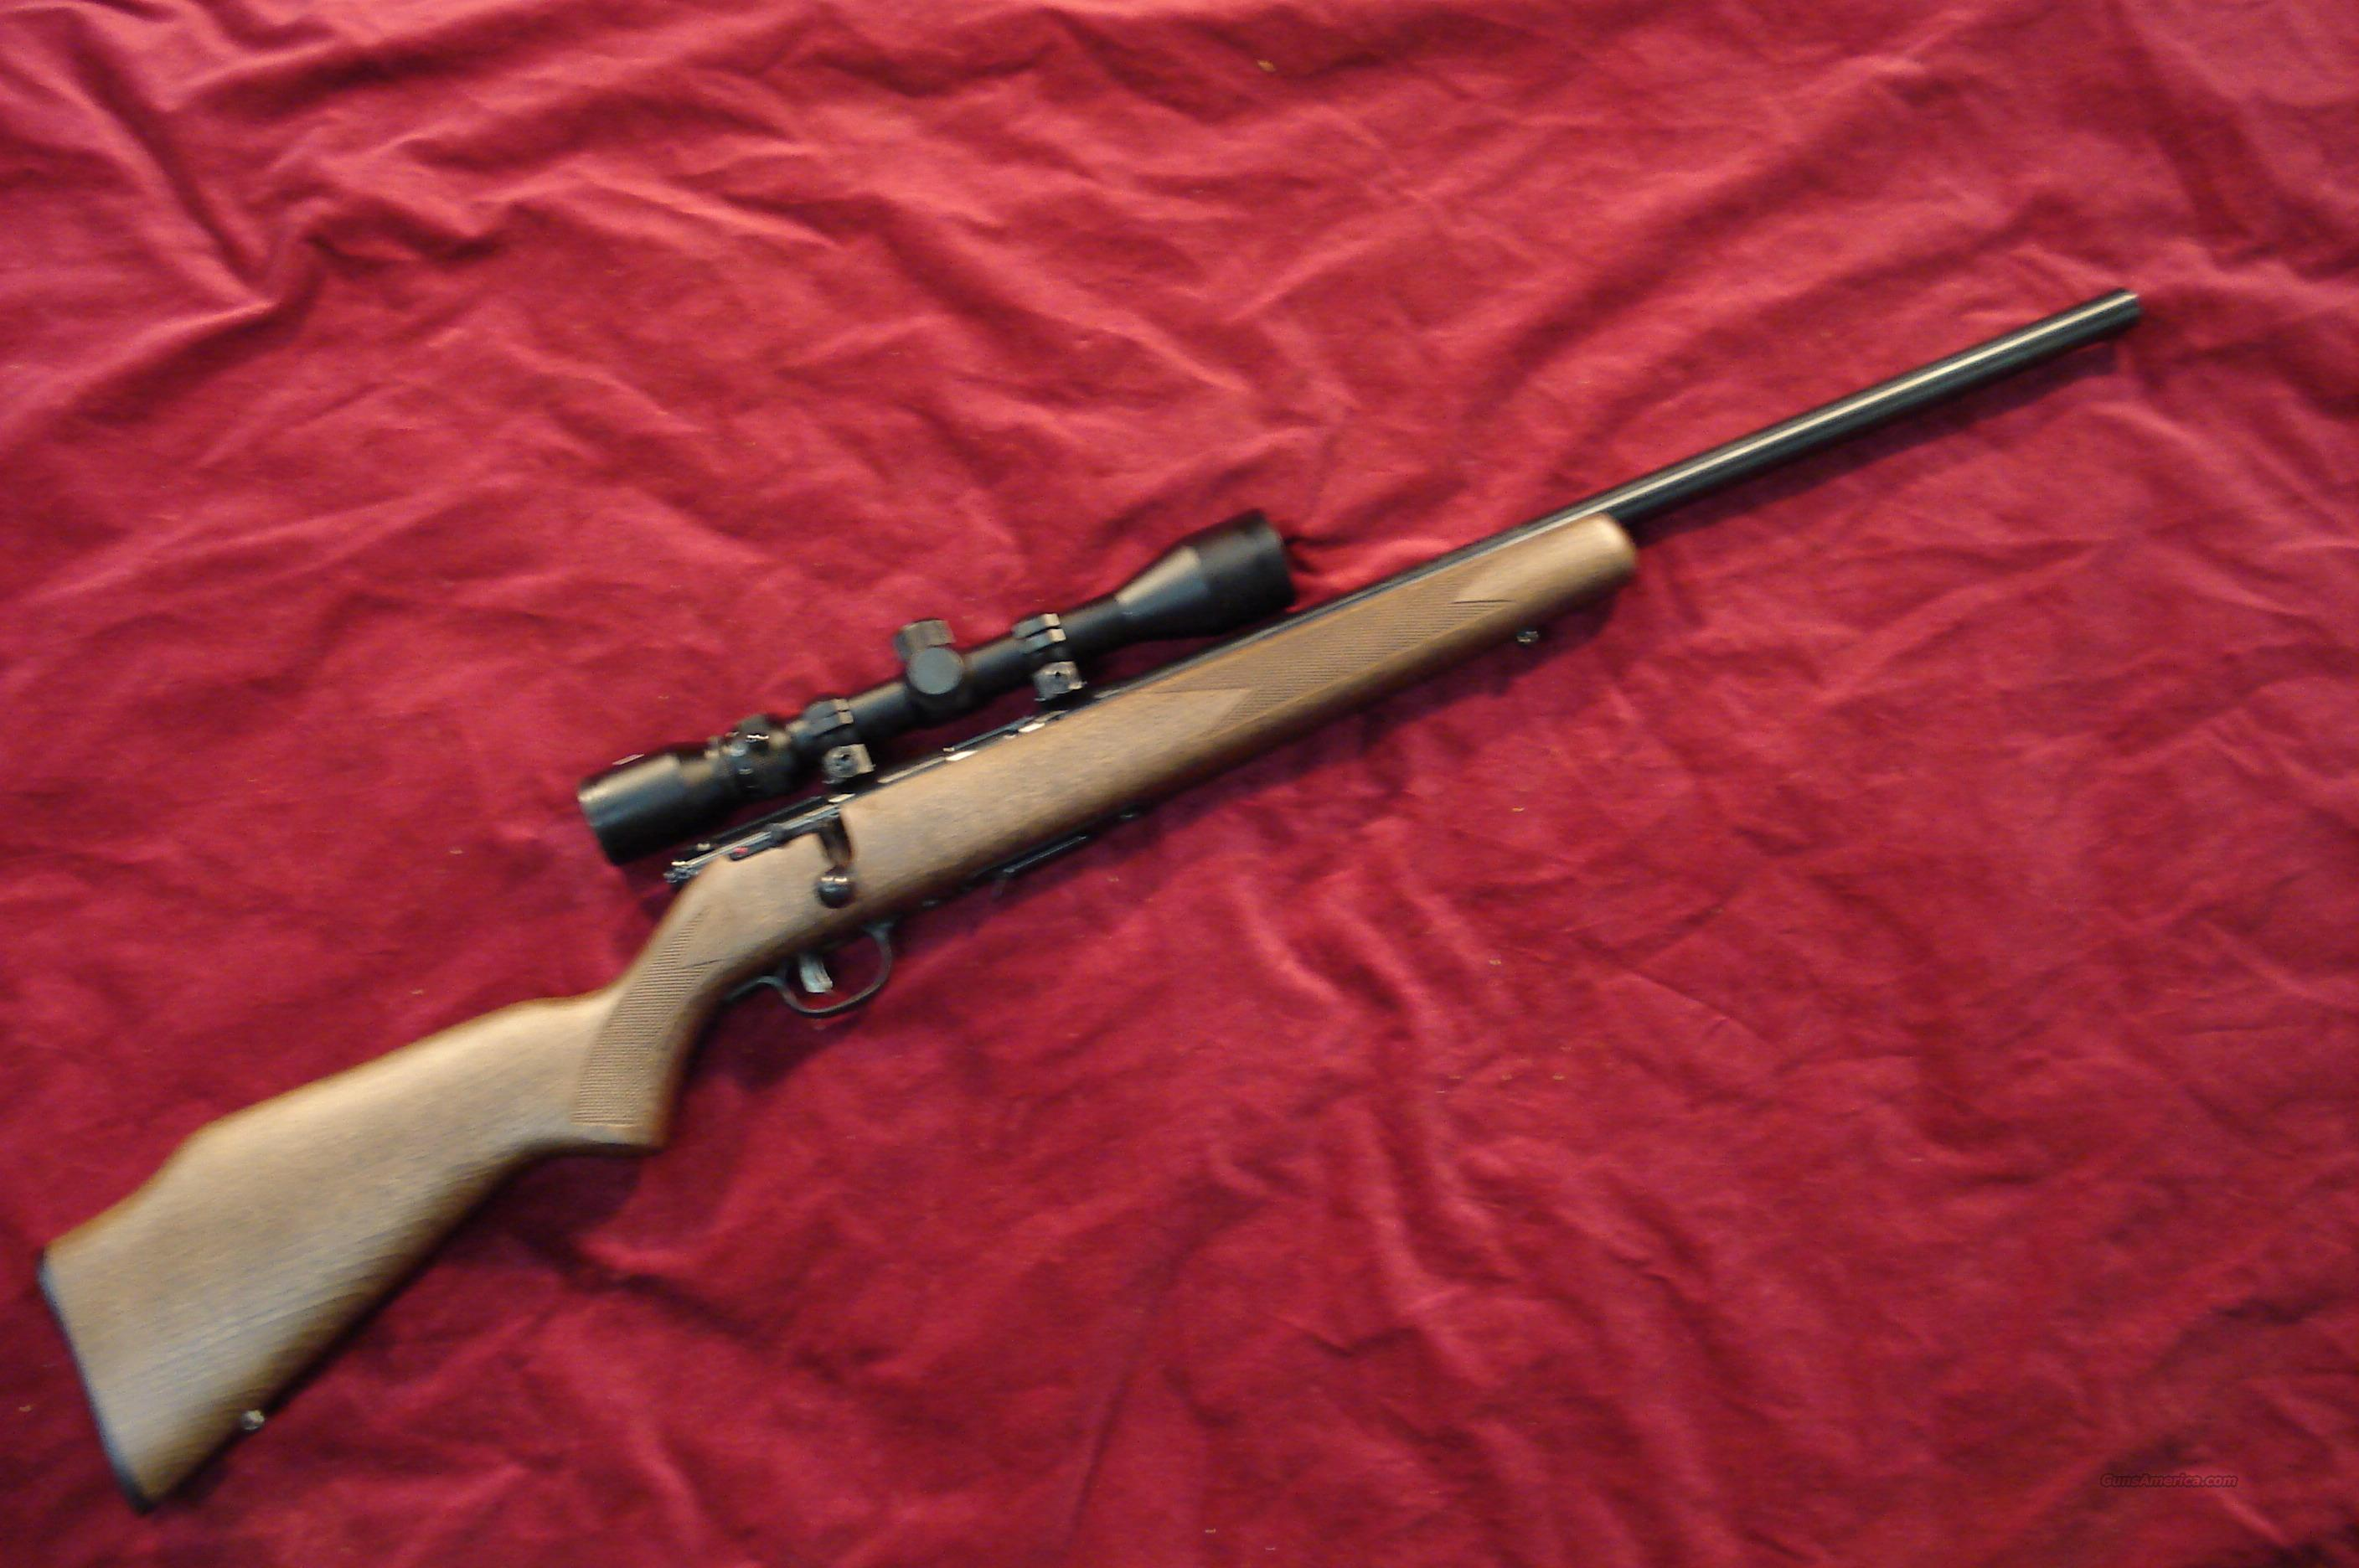 SAVAGE 17HMR ACCUTRIGGER HEAVEY BARREL WOOD STOCK SCOPE PACKAGE NEW (93R17GVXP)  Guns > Rifles > Savage Rifles > Accutrigger Models > Sporting